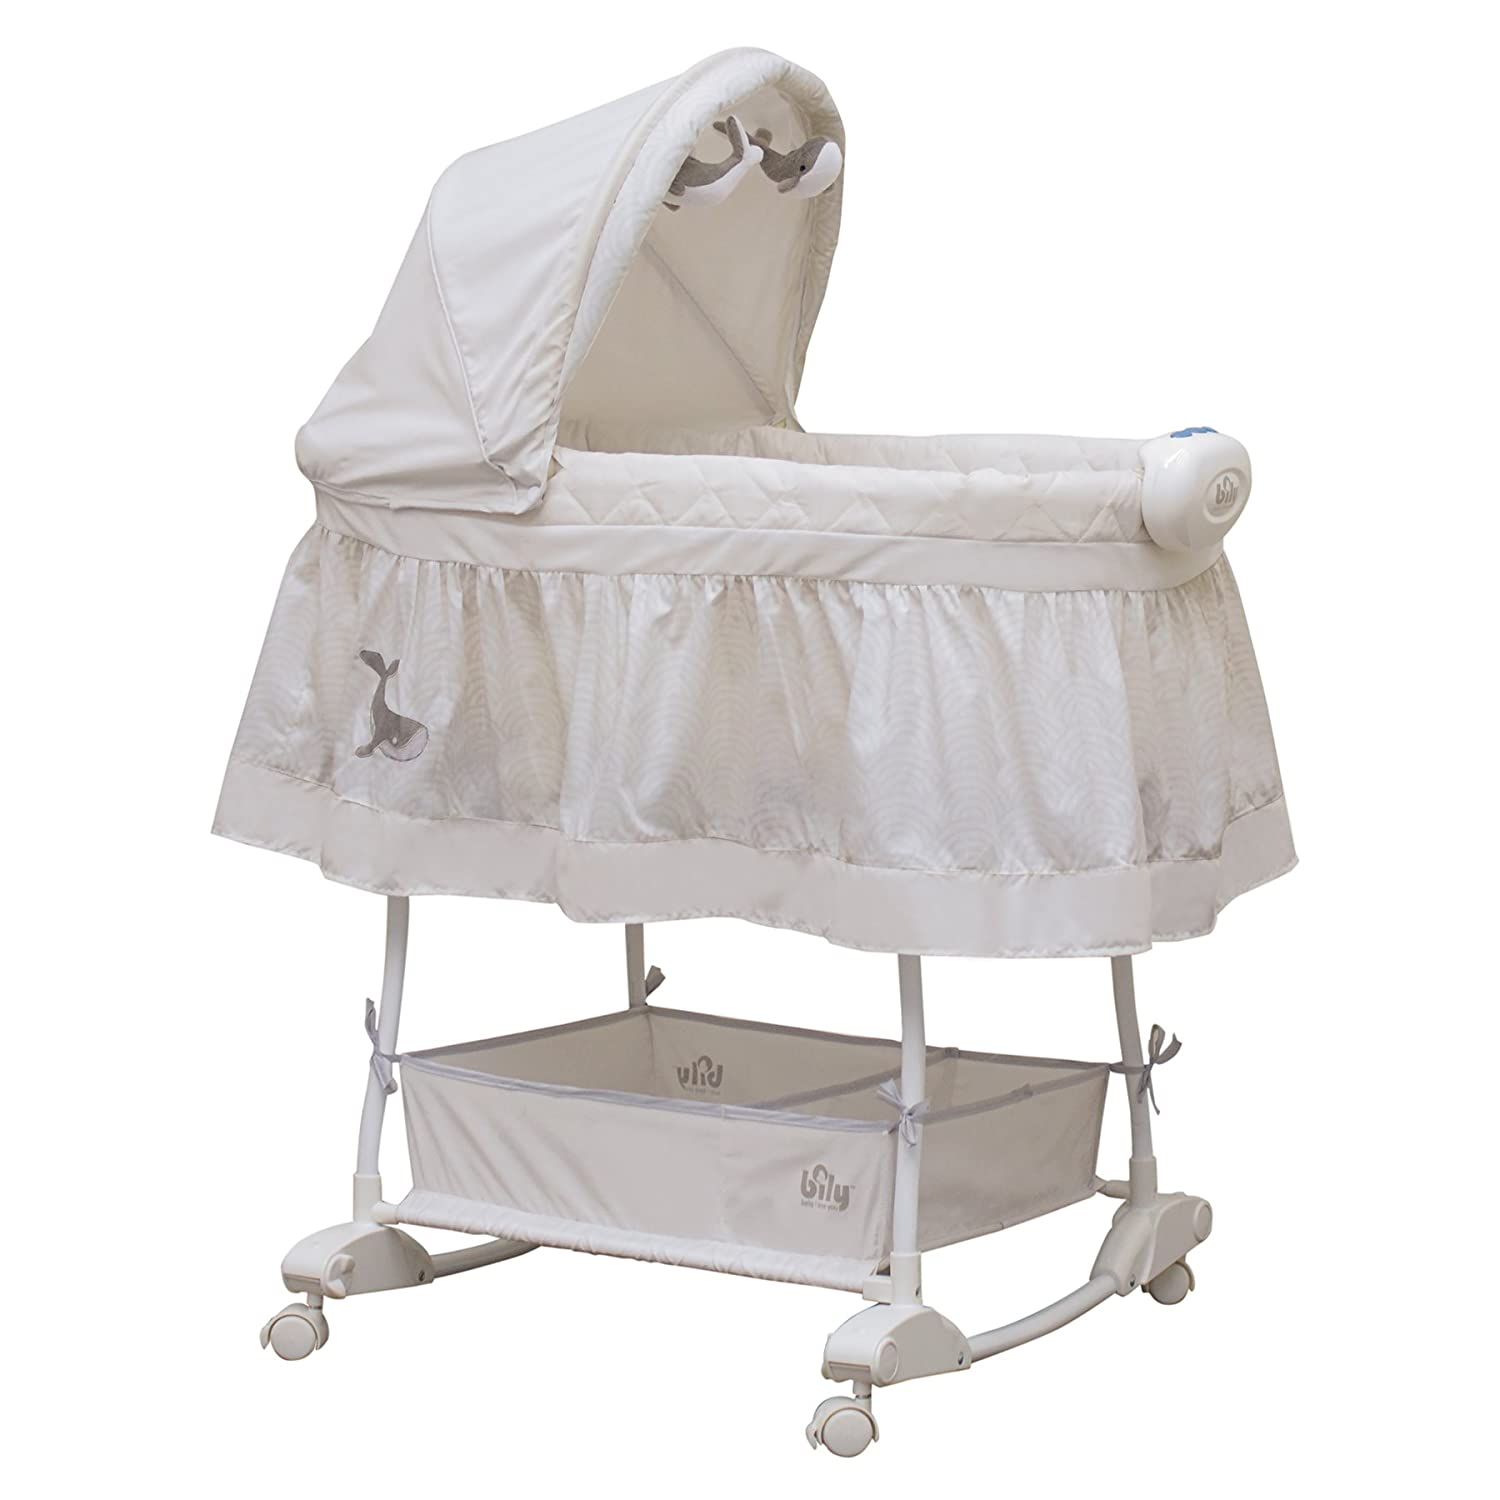 Bily B3350OCE Rocking Bassinet Ocean Dreams